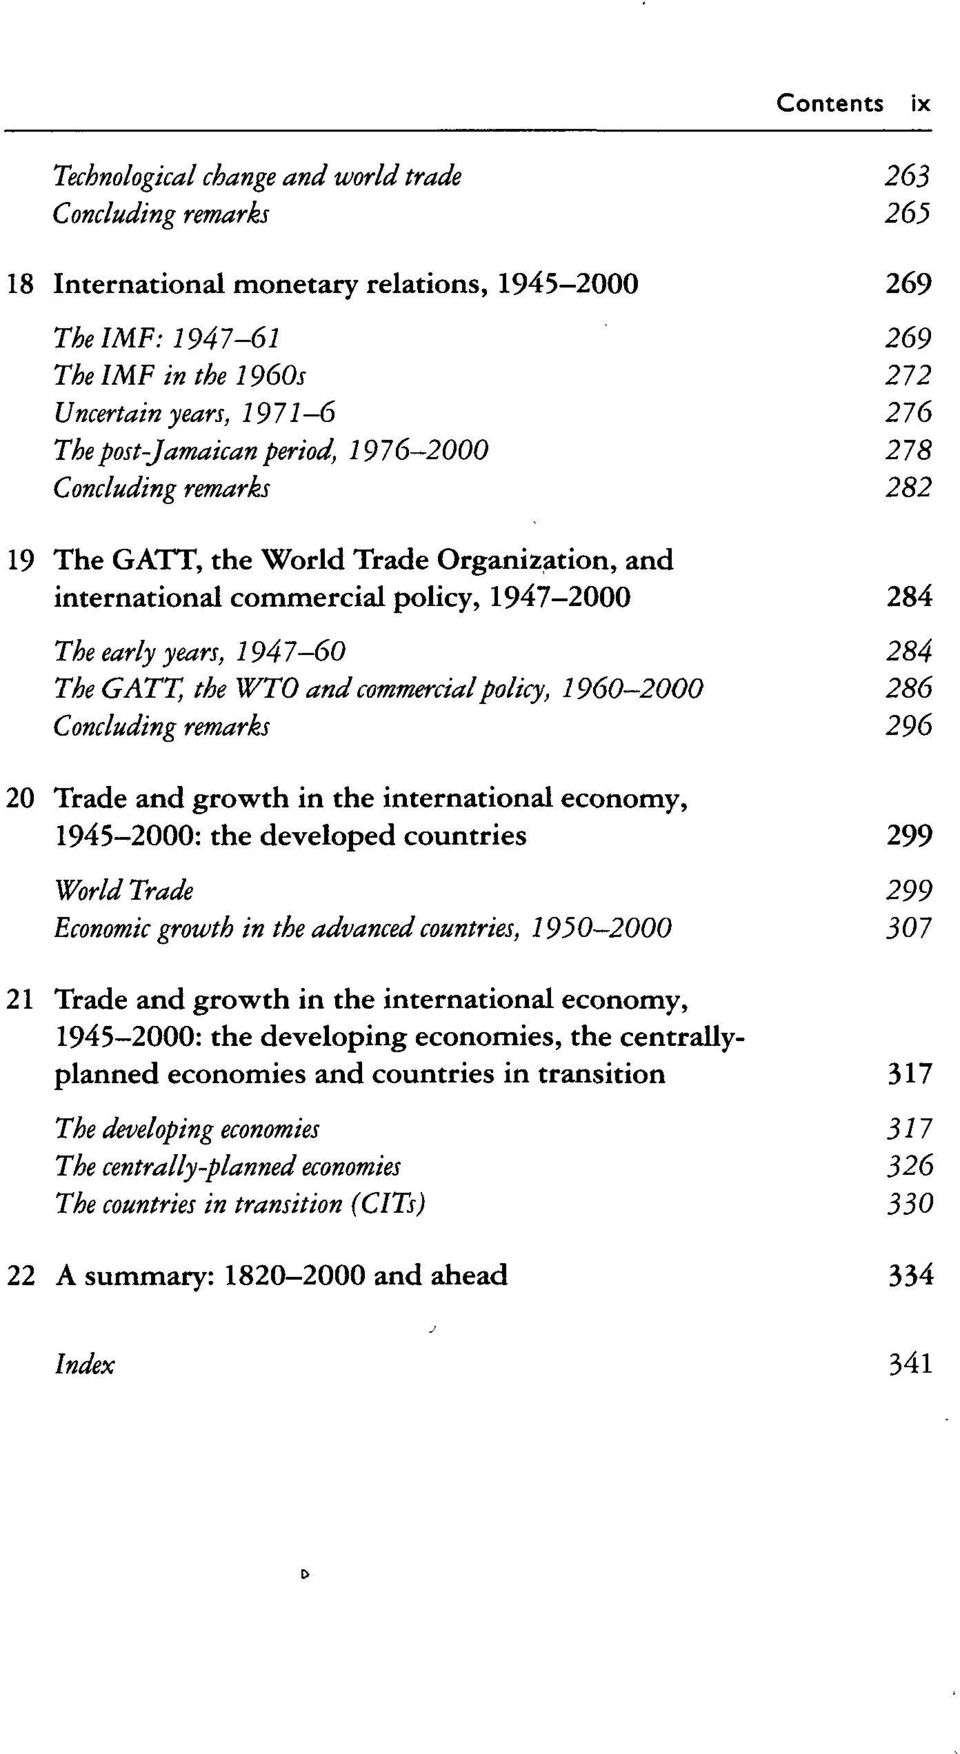 the WTO and commercial policy, 1960-2000 286 Concluding remarks 296 20 Trade and growth in the international economy, 1945-2000: the developed countries 299 World Trade 299 Economic growth in the